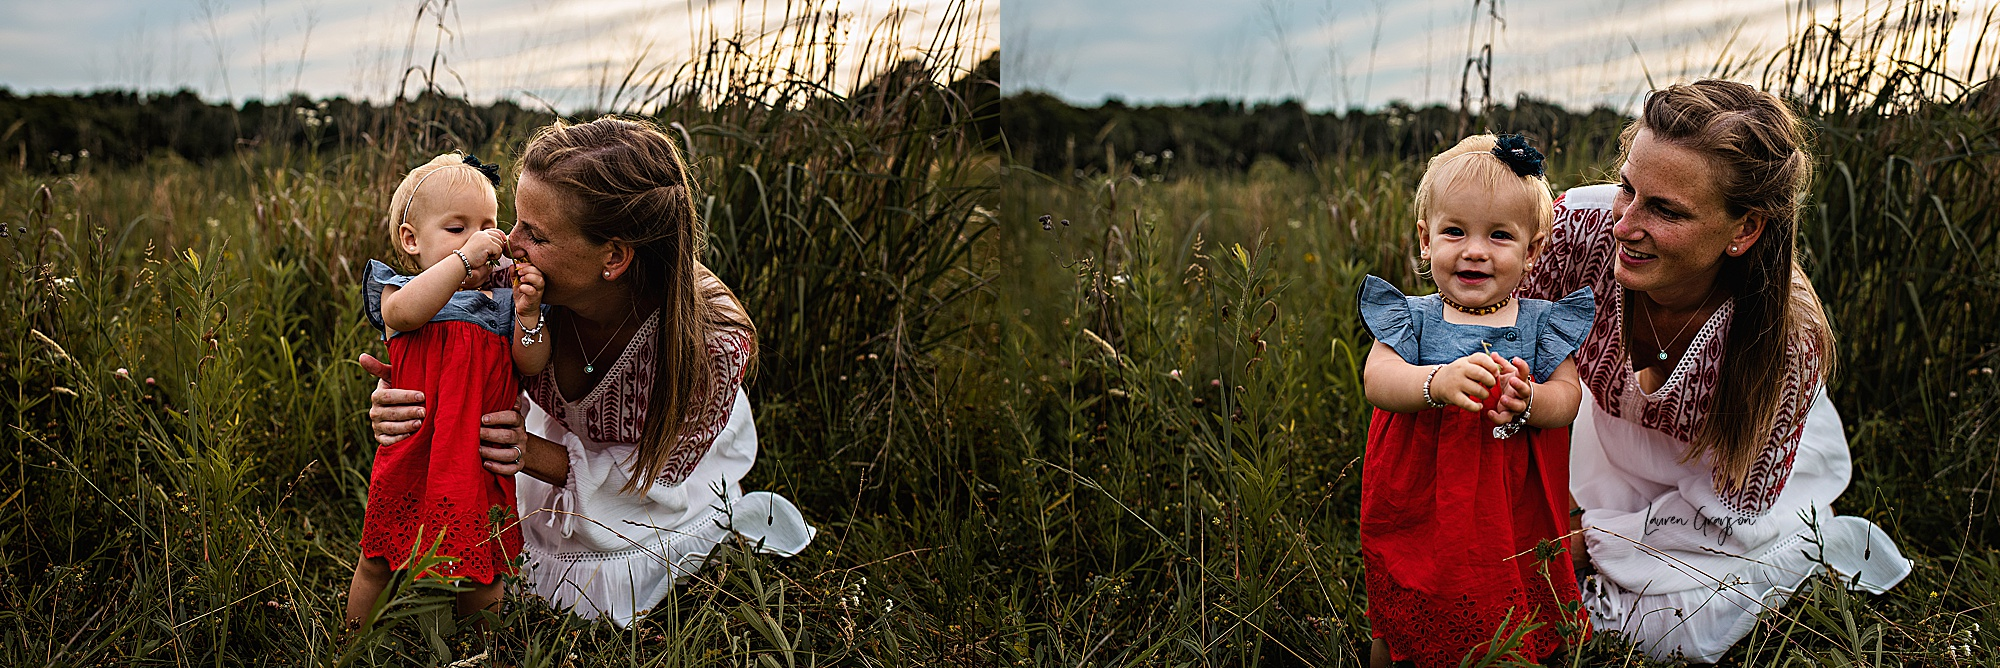 lauren-grayson-photography-akron-ohio-canton-family-photographer-lacey_0036.jpg